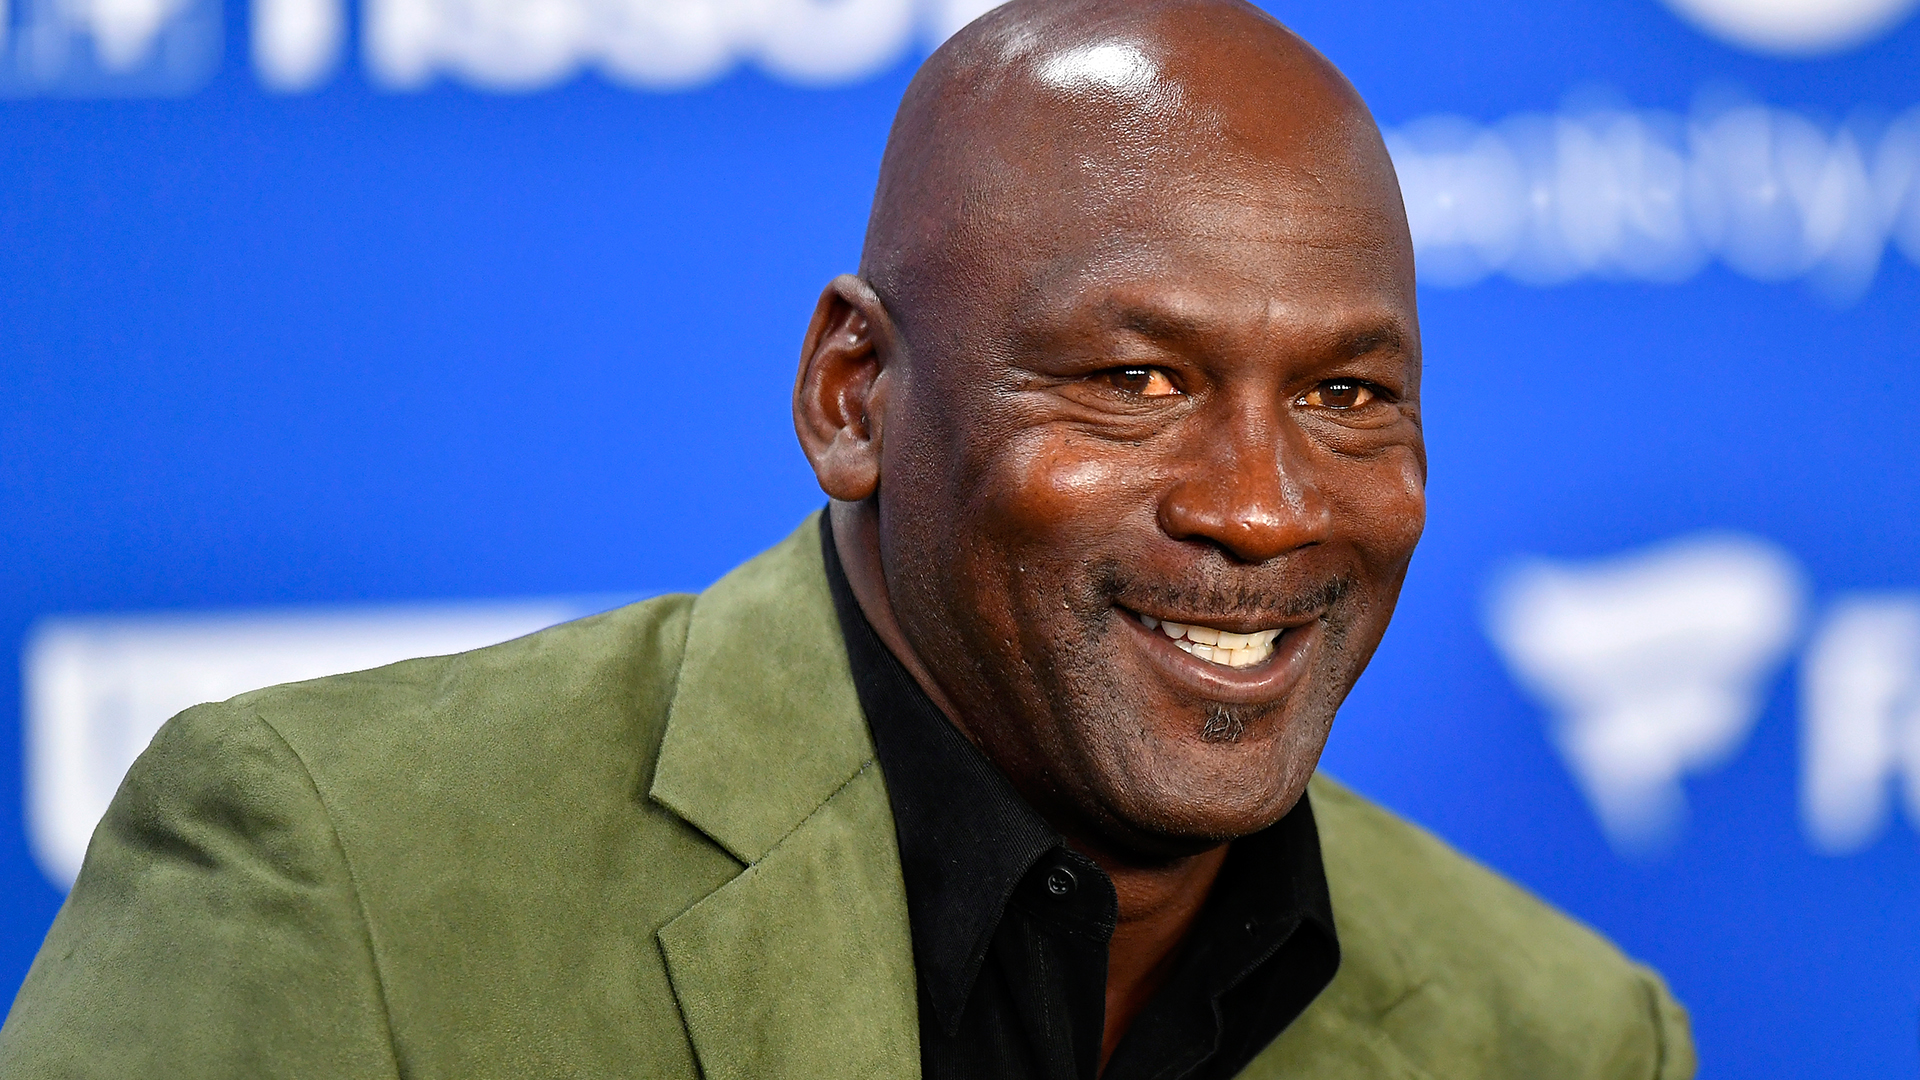 Michael Jordan Reportedly Declined $100 Million for Two-Hour Appearance at Event